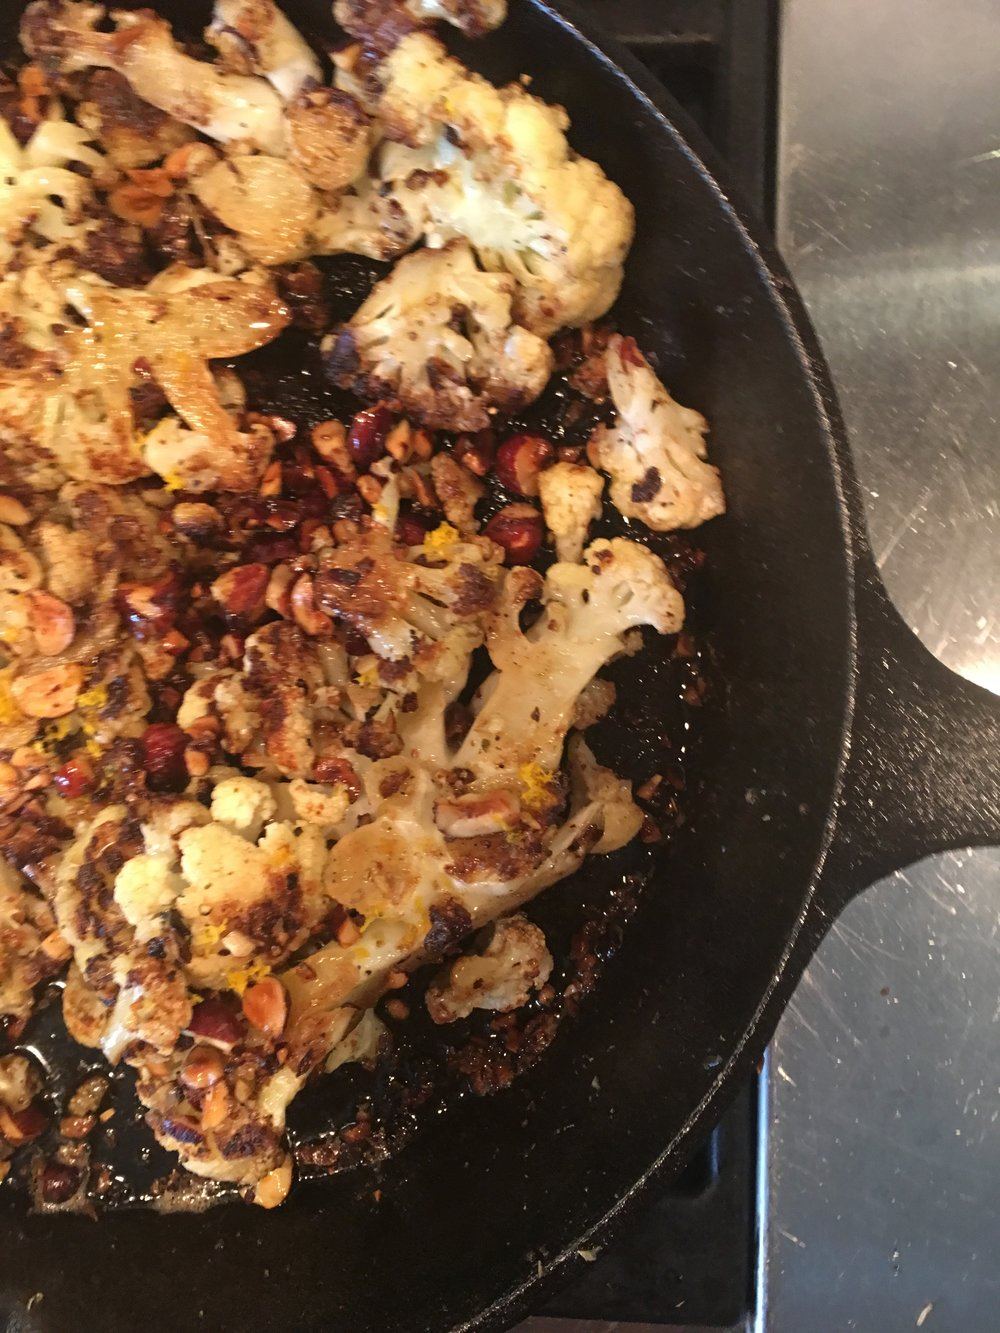 Roasted Cauliflower with Hazelnut Browned Butter